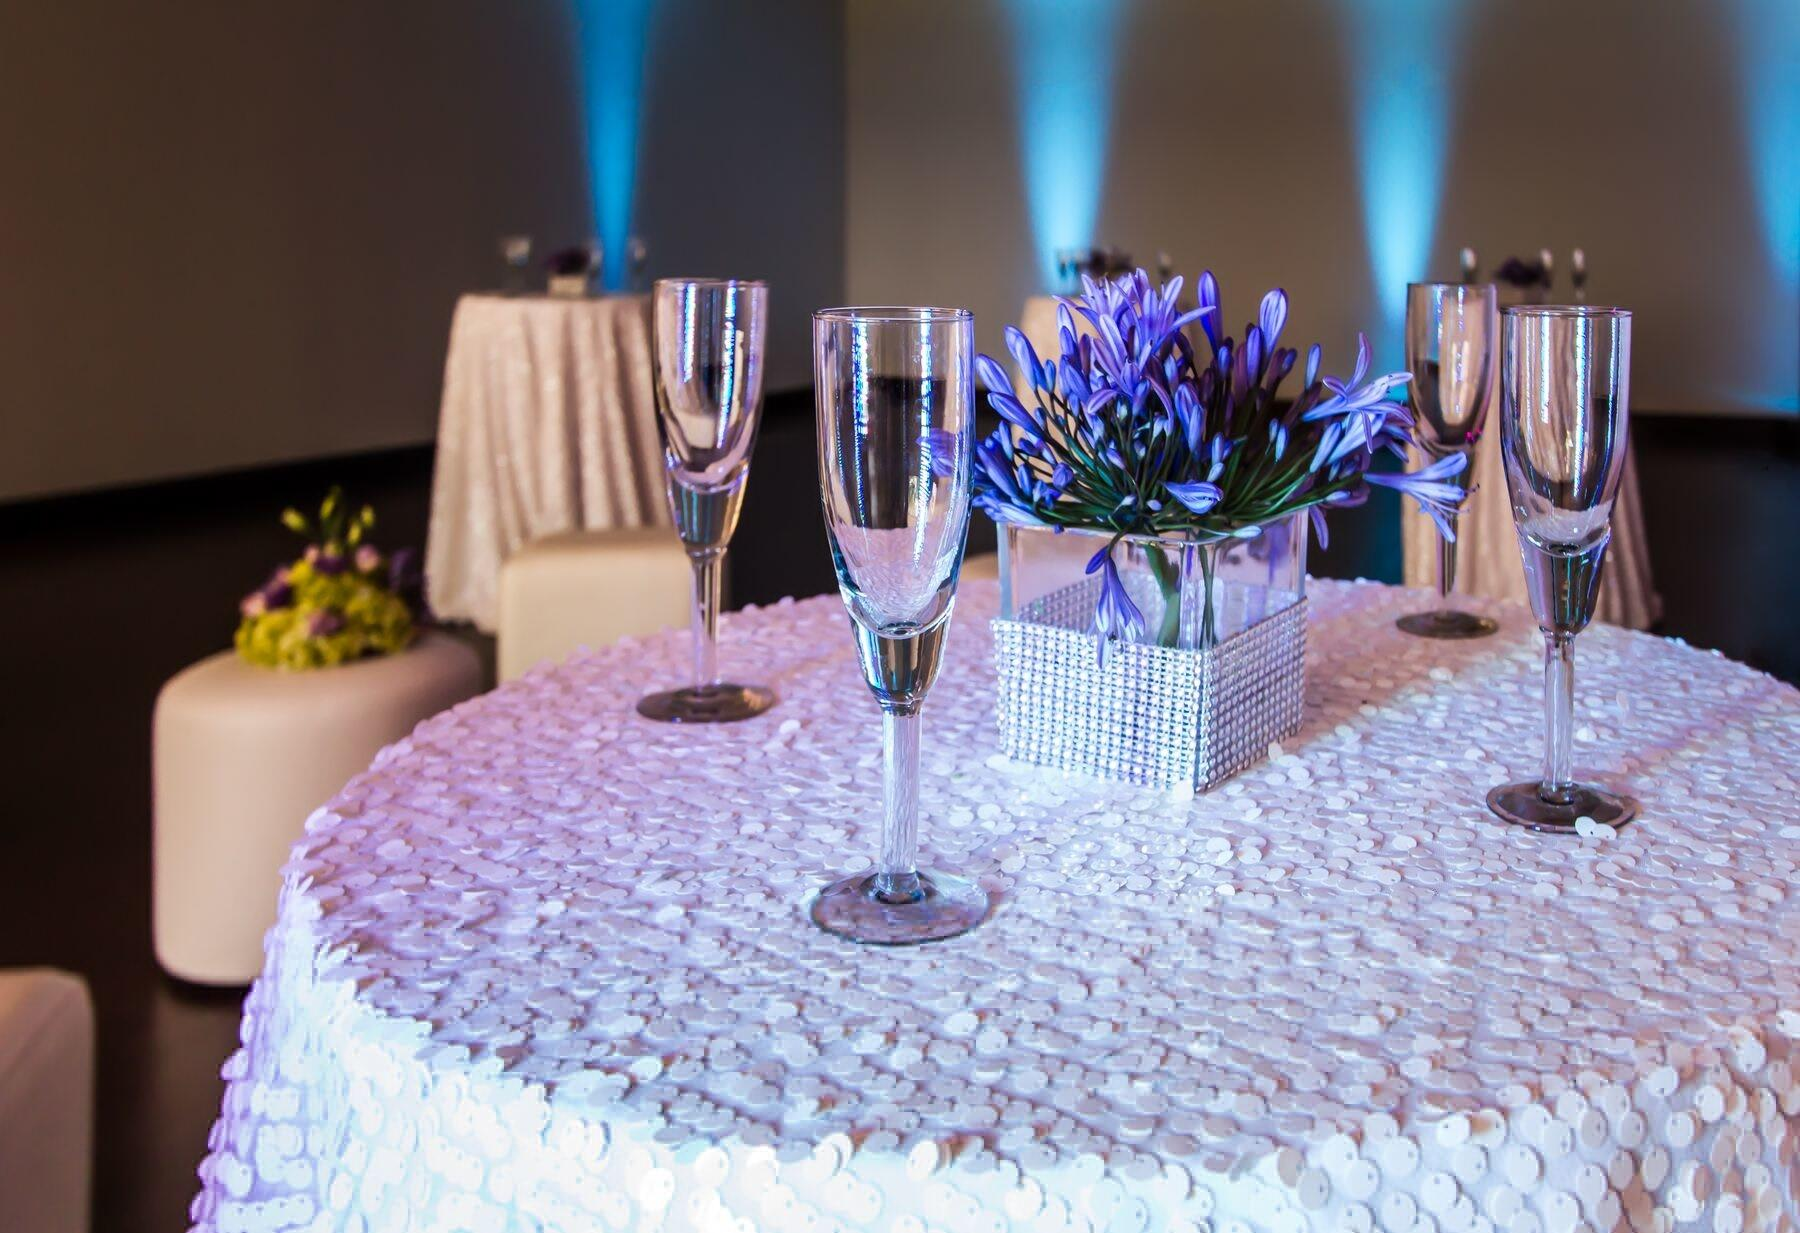 Champagne flutes and floral centerpiece set on cocktail table